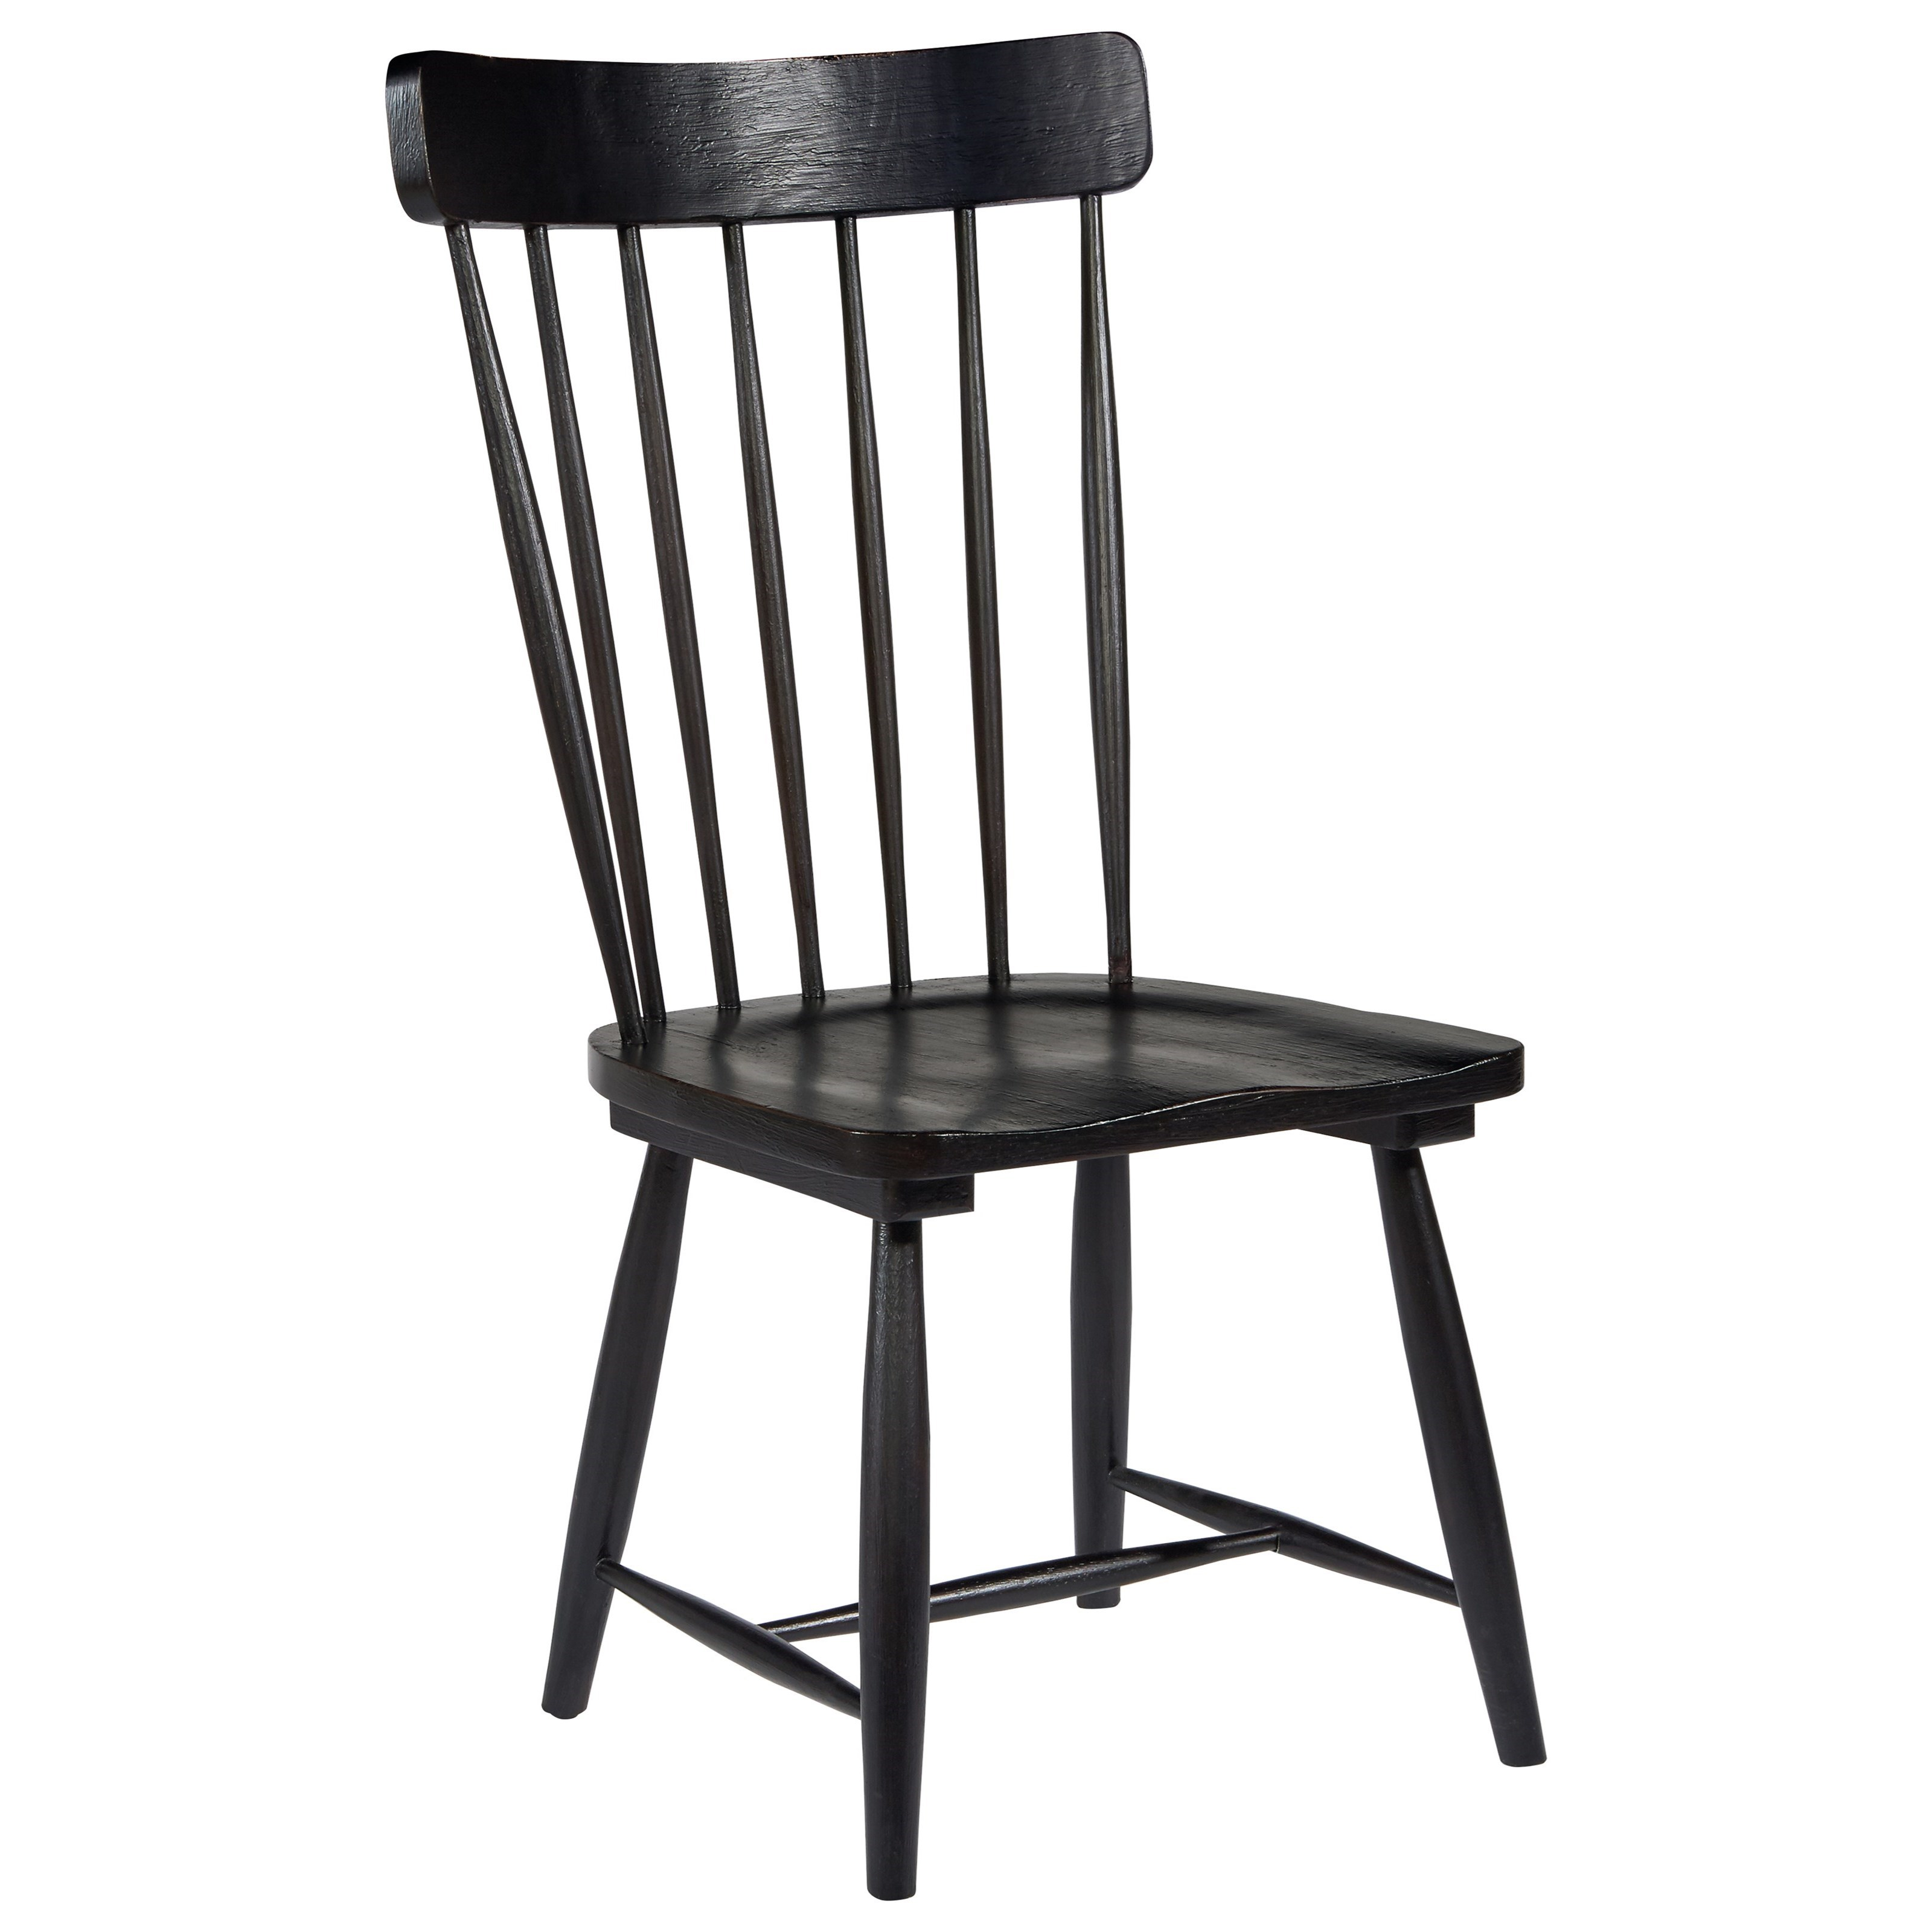 Joanna Gaines Farmhouse Bar Stools Magnolia Home By Joanna Gaines Farmhouse Spindle Back Side